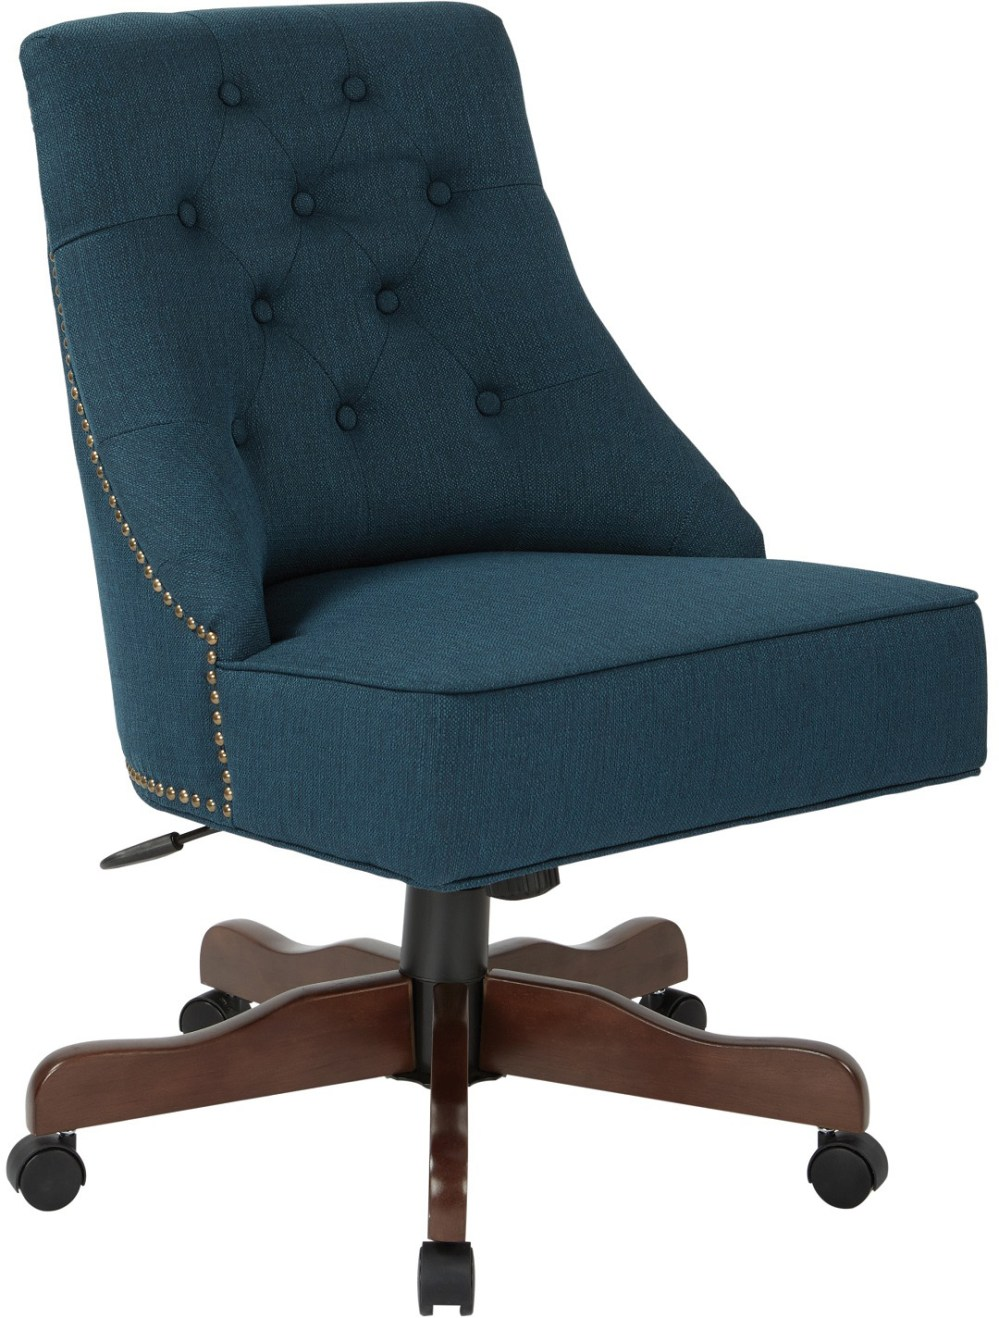 medium resolution of rebecca tufted back office chair in klein azure fabric with nailheads with coffee base